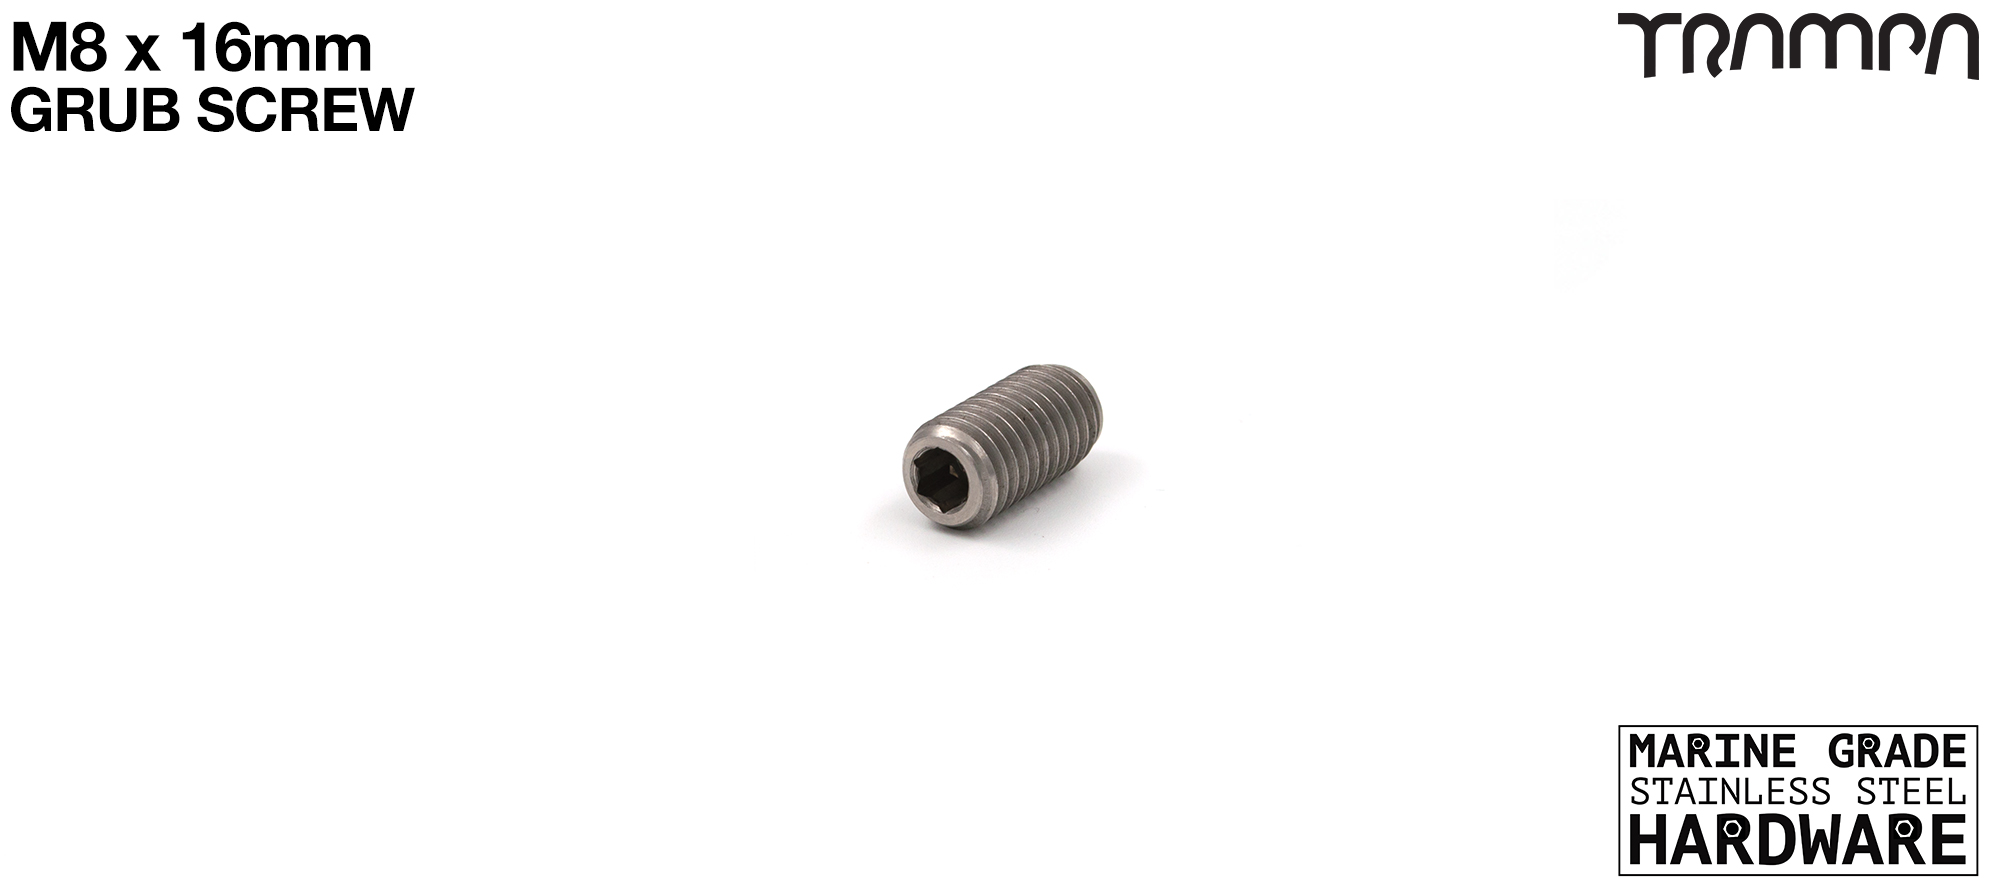 M8 x 16mm Grub Screw MGST Shape B with FLAT BALL - Connects Street Urban & Mountaniboard mounts to Hangers #35